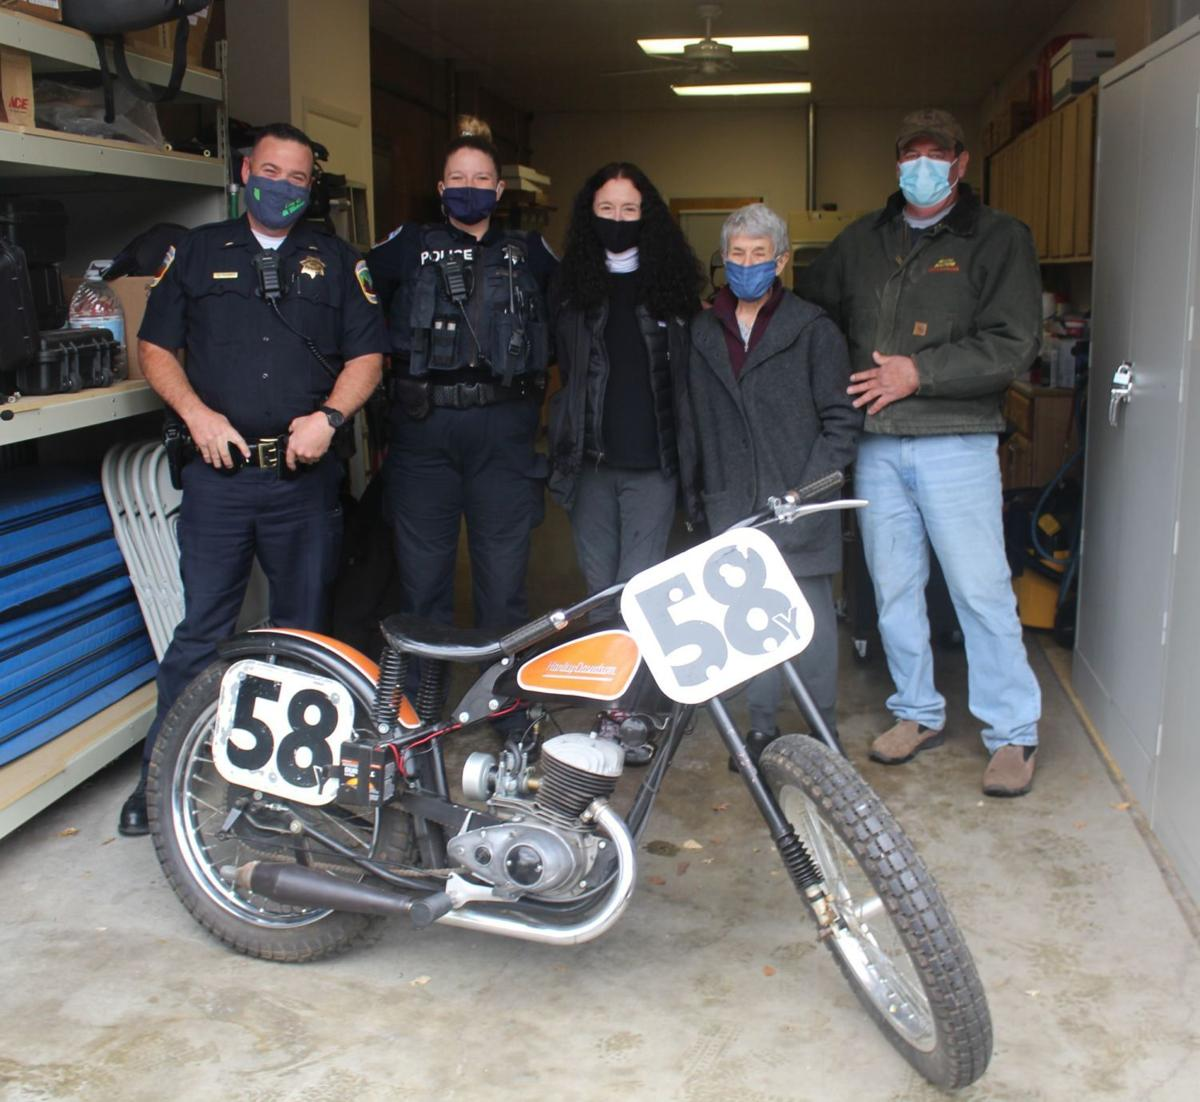 Stolen motorcycle recovered